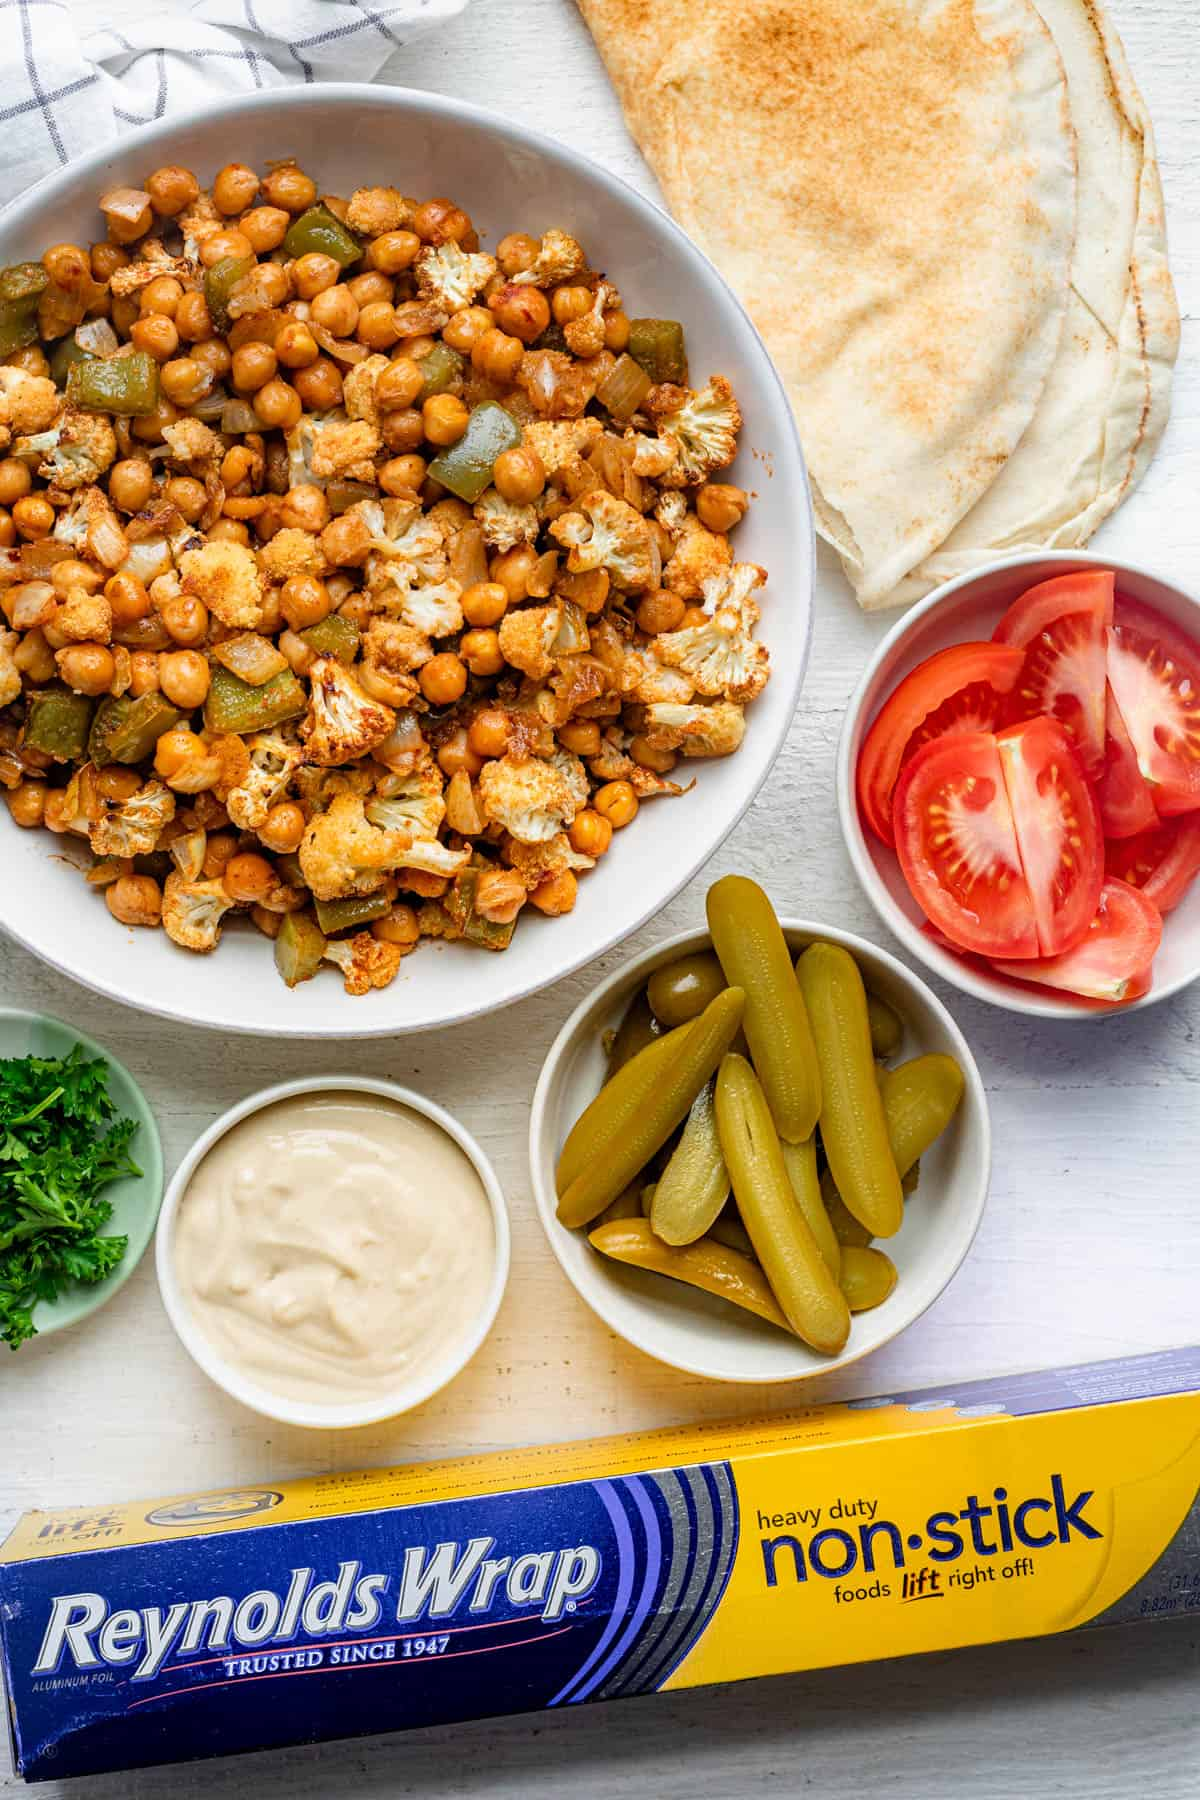 Chickpea shawarma bowl with all the toppings around and Reynolds wrap nonstick foil